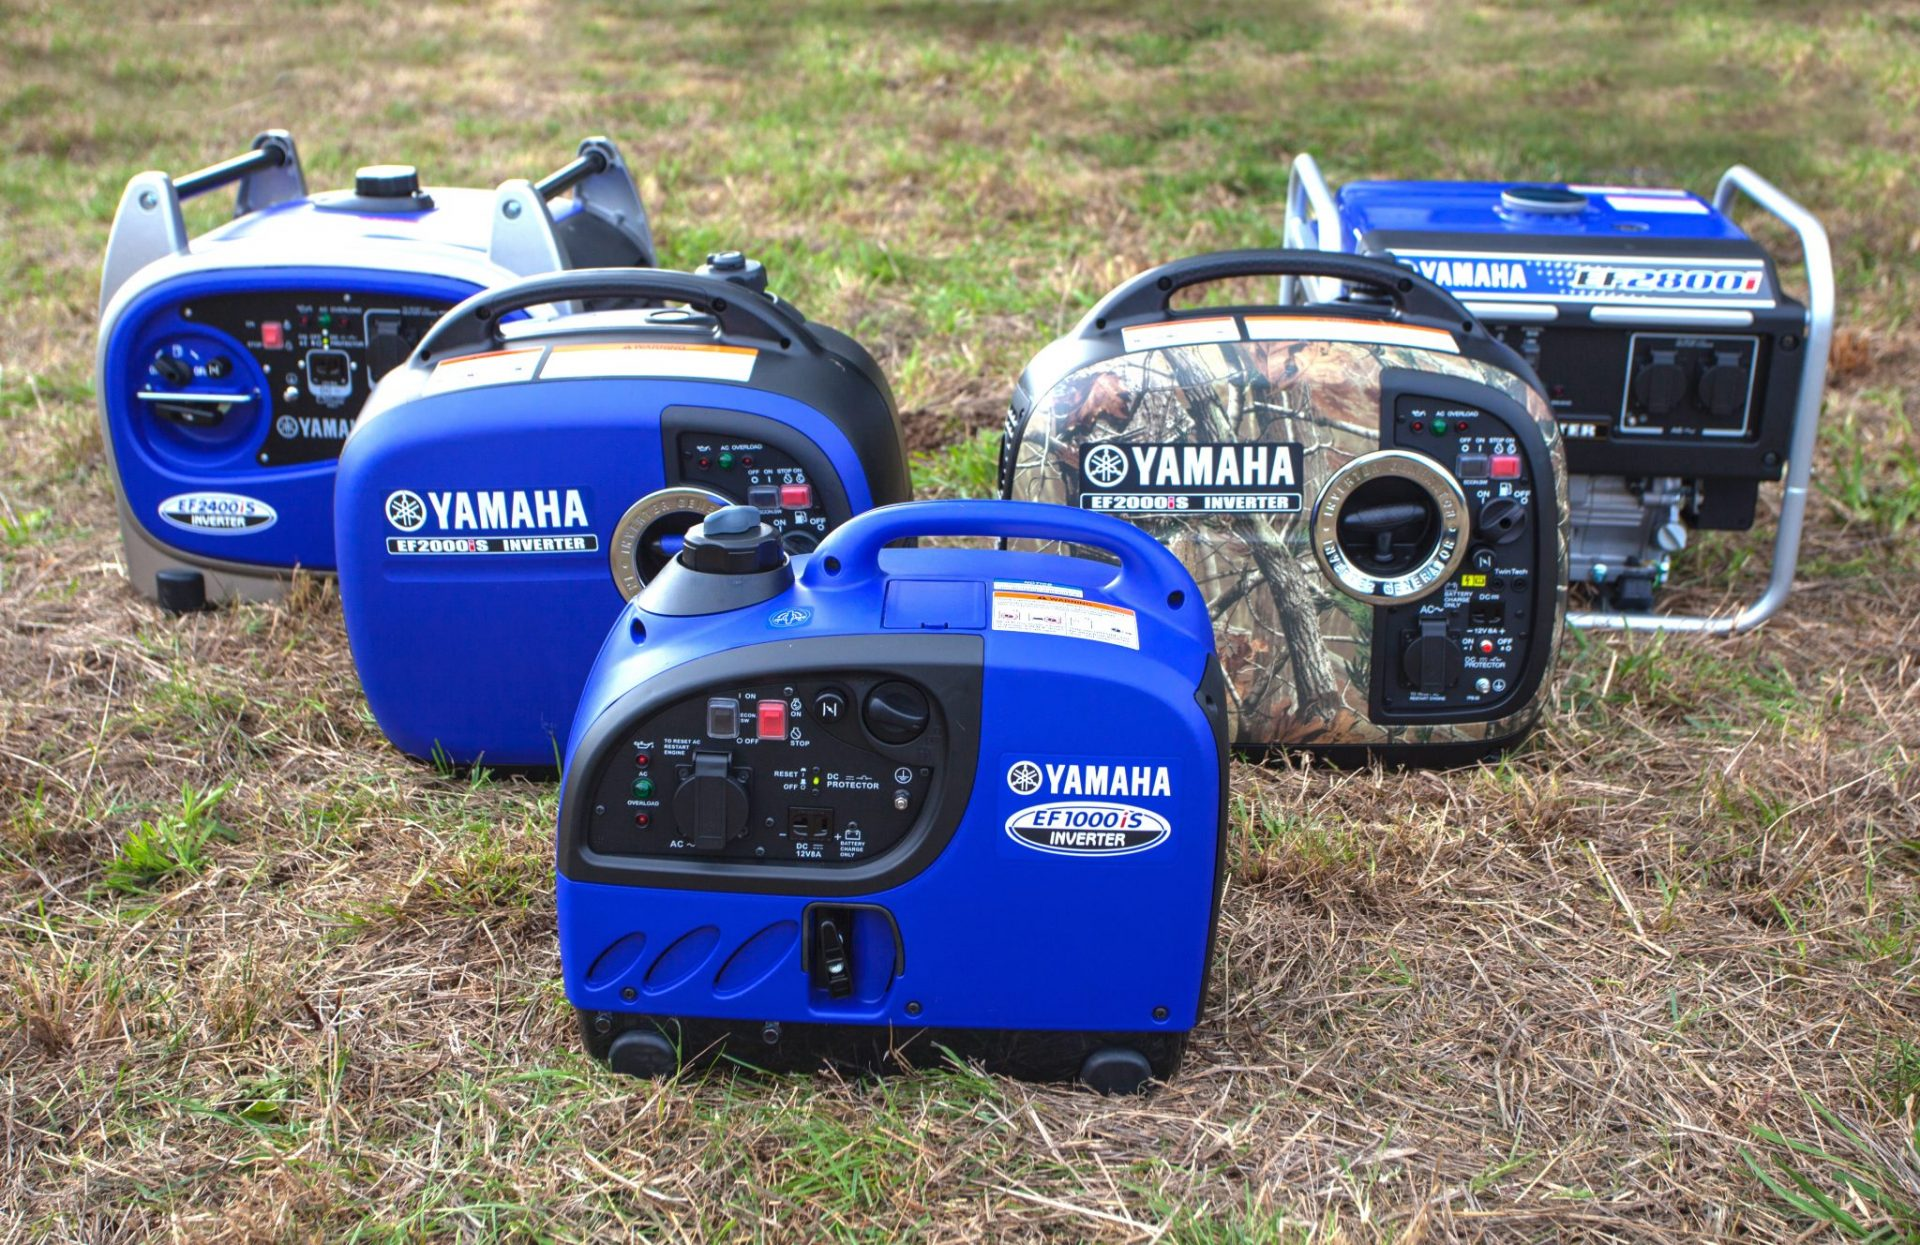 Ef1000is 1 Kva Inverter Generator Yamaha Generators Complete Circuit Design With 50 Hz Sine Oscillator Note Images Are For Display Purposes Only Product May Differ From Displayed